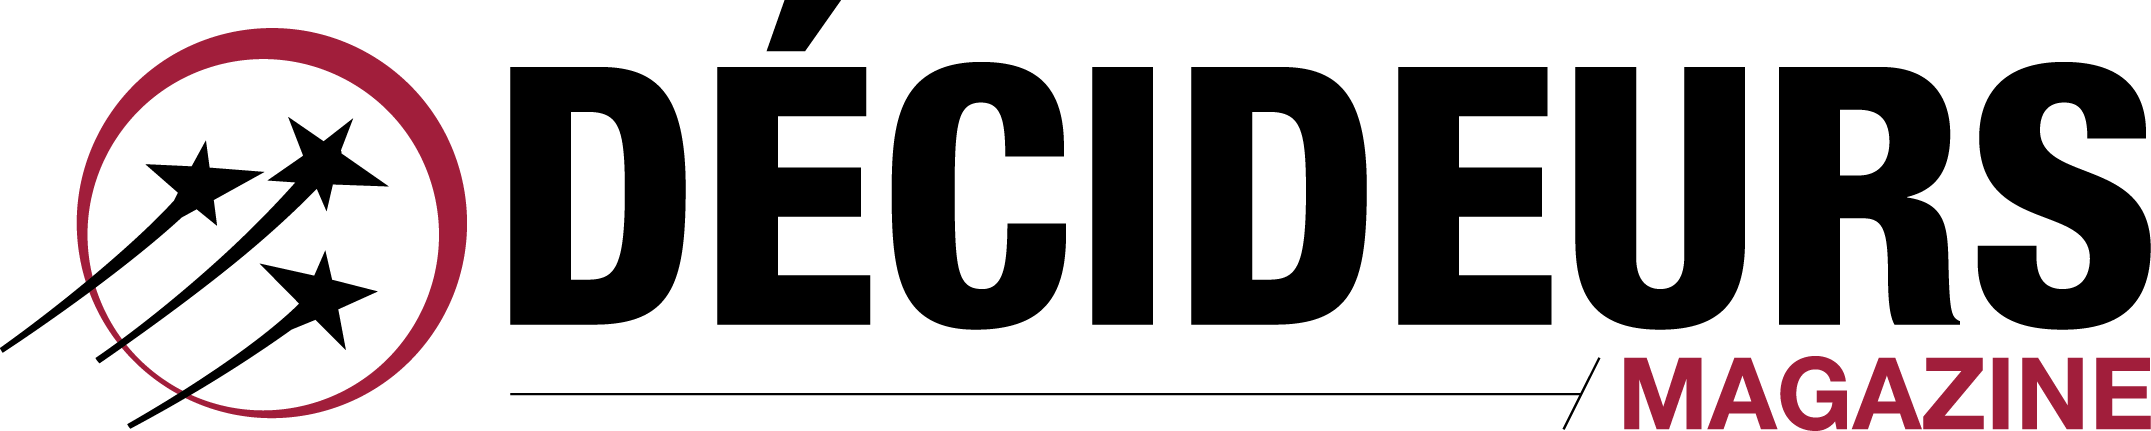 decideurs magazine logo